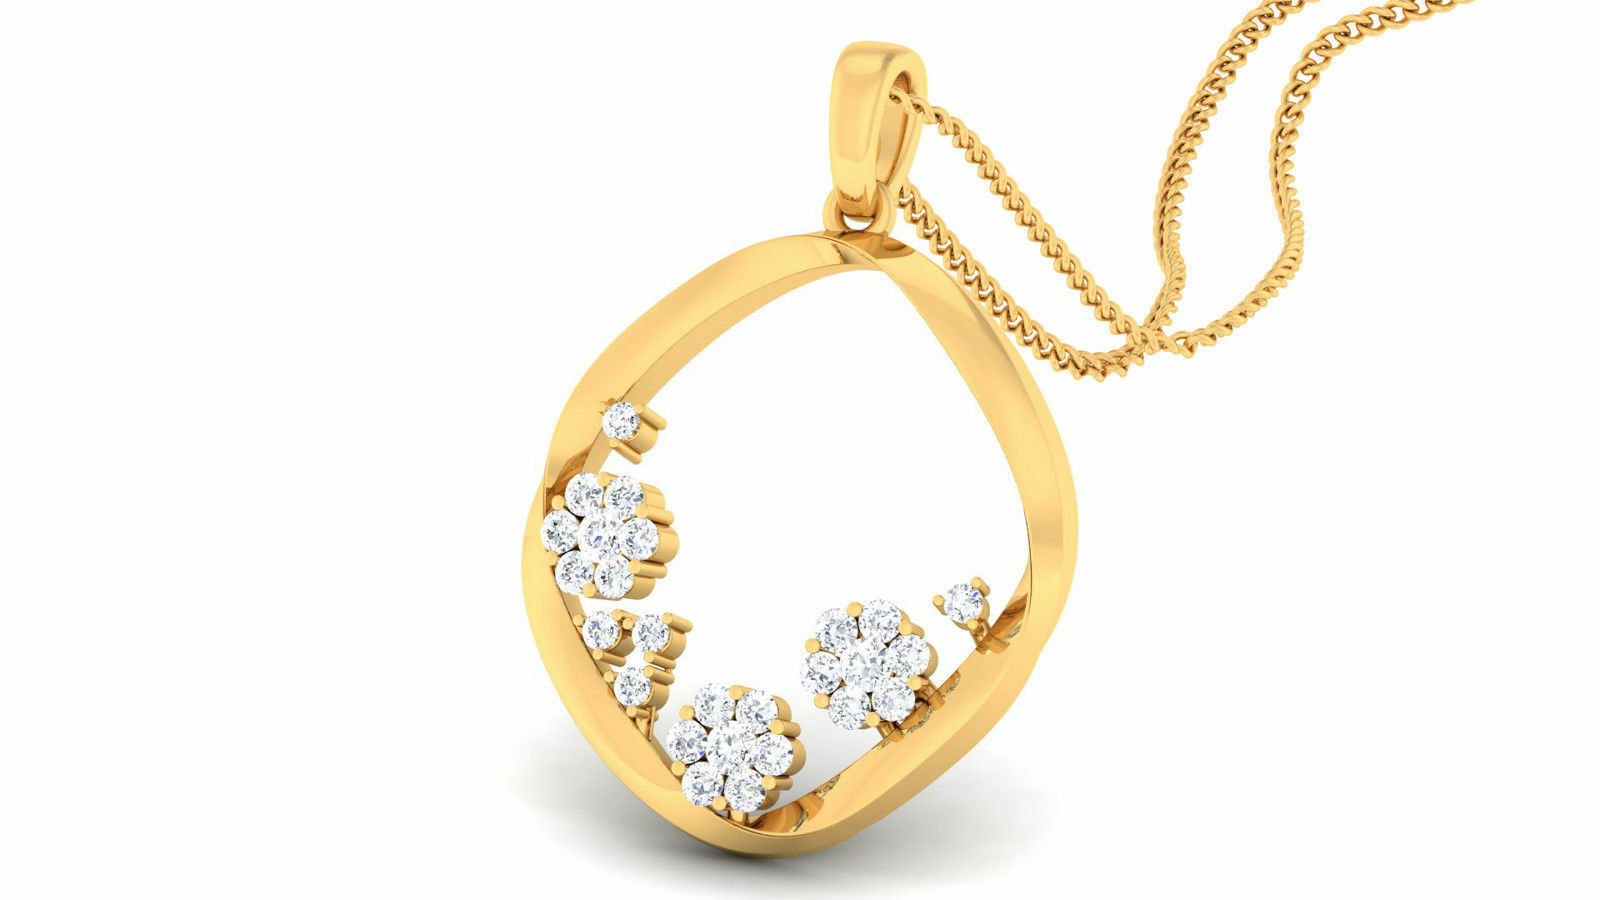 Classy 0.28 Cts Natural Pave Diamonds Pendant In Fine Hallmark 14K Yellow gold